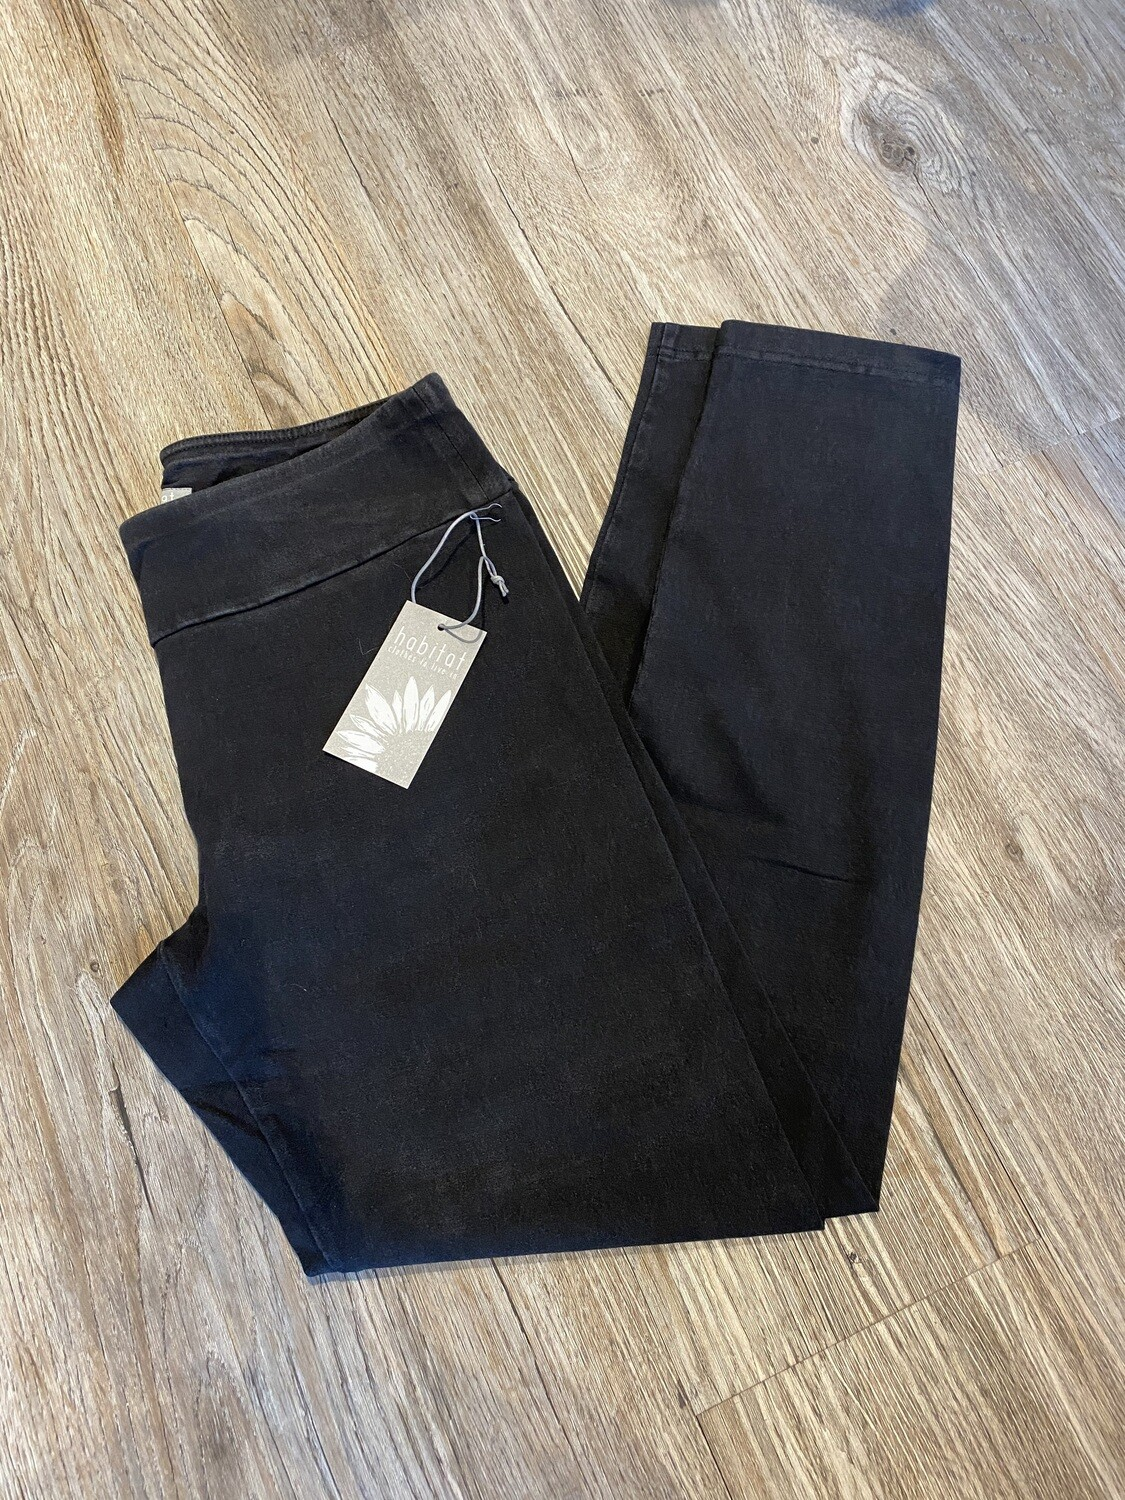 Habitat 31566 Blk Denim S